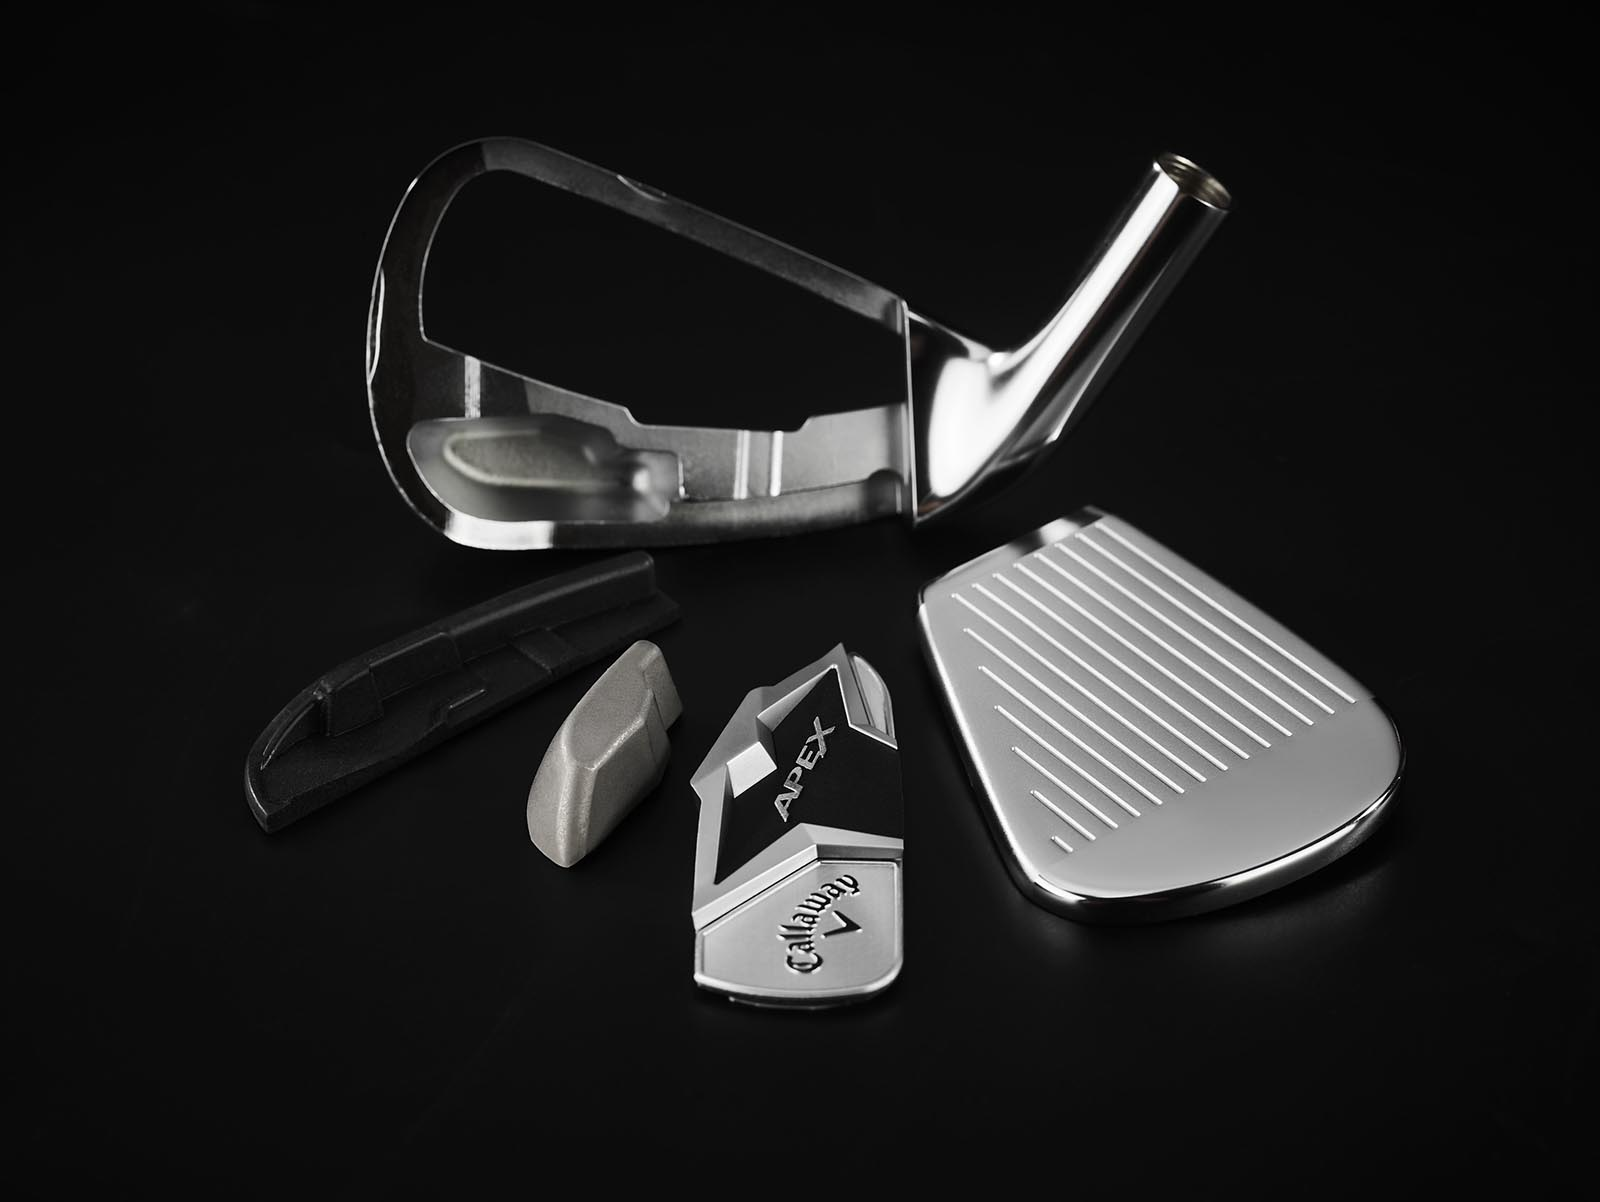 Callaway Apex 19 and Apex Pro Irons image for feature section 2019